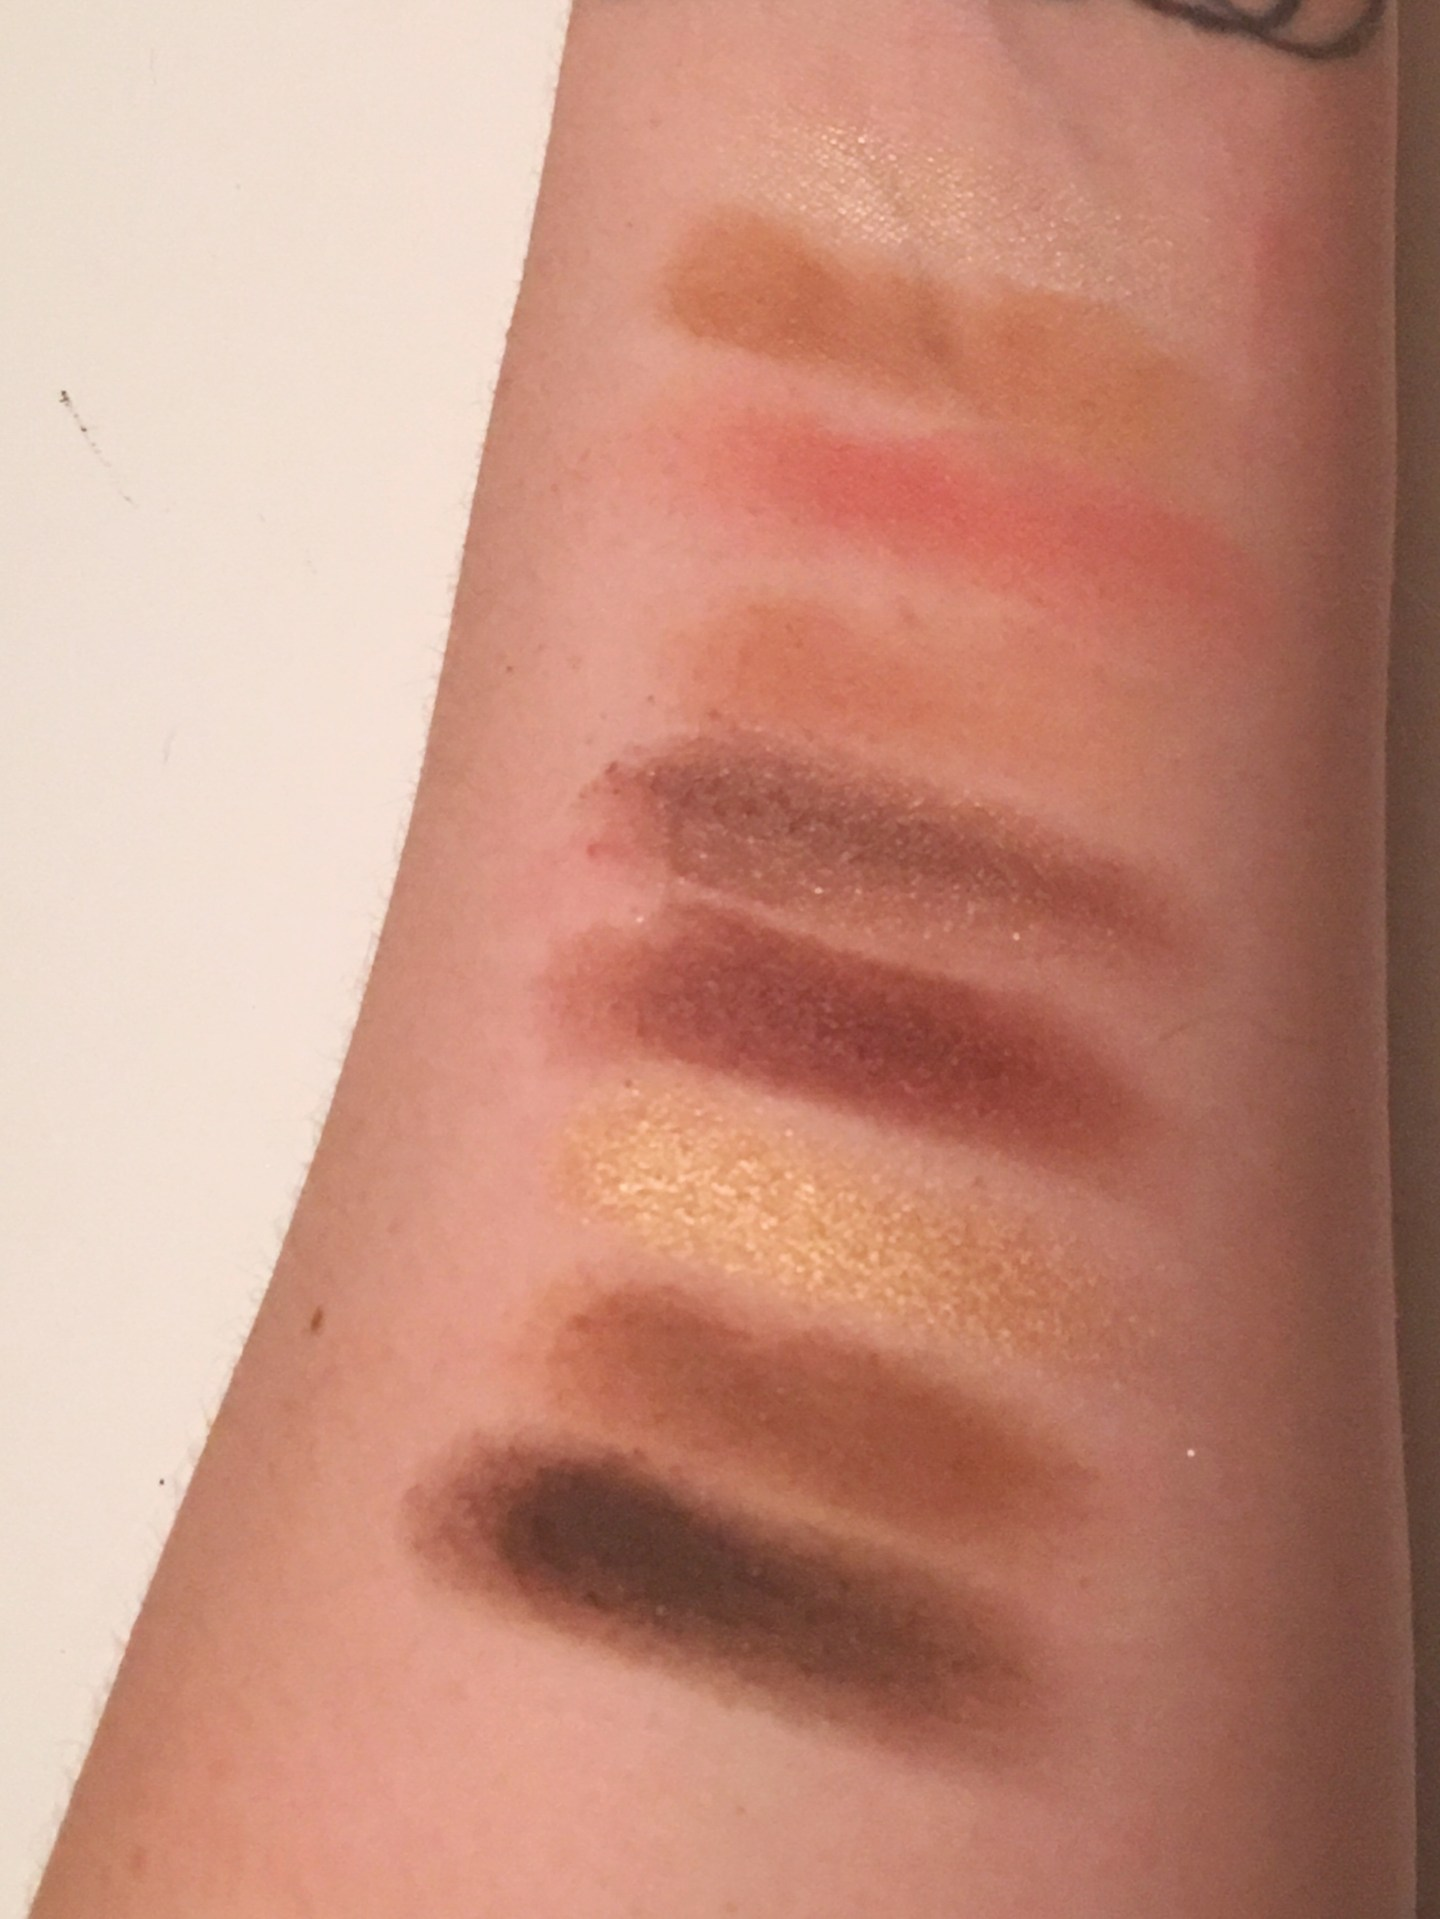 From top to bottom: Highlighter in Champagne, Bronzer in Park Avenue Princess™, Blush in Unleashed (nude rose), eyeshadows in: Bare to Explore (pink beige), Make a Mauve (plum mauve), Plum Away with Me (dark plum), Up to No Gold (gold), Tan-gled Up in You (tan), and Don't Turn A-Brown (dark brown).